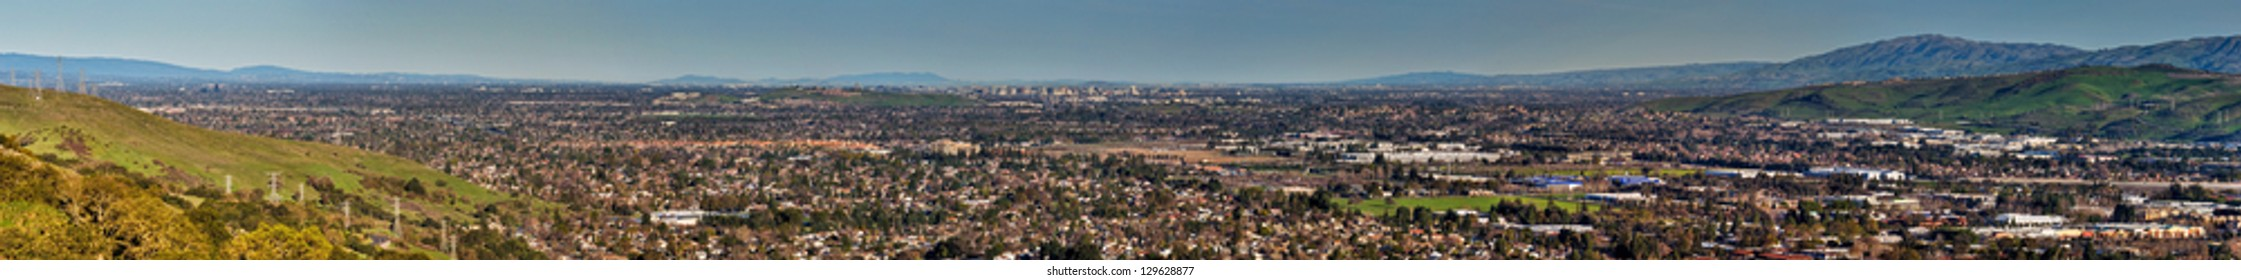 An expansive panorama of the South San Francisco Bay area including the downtown San Jose skyline from Coyote Peak.